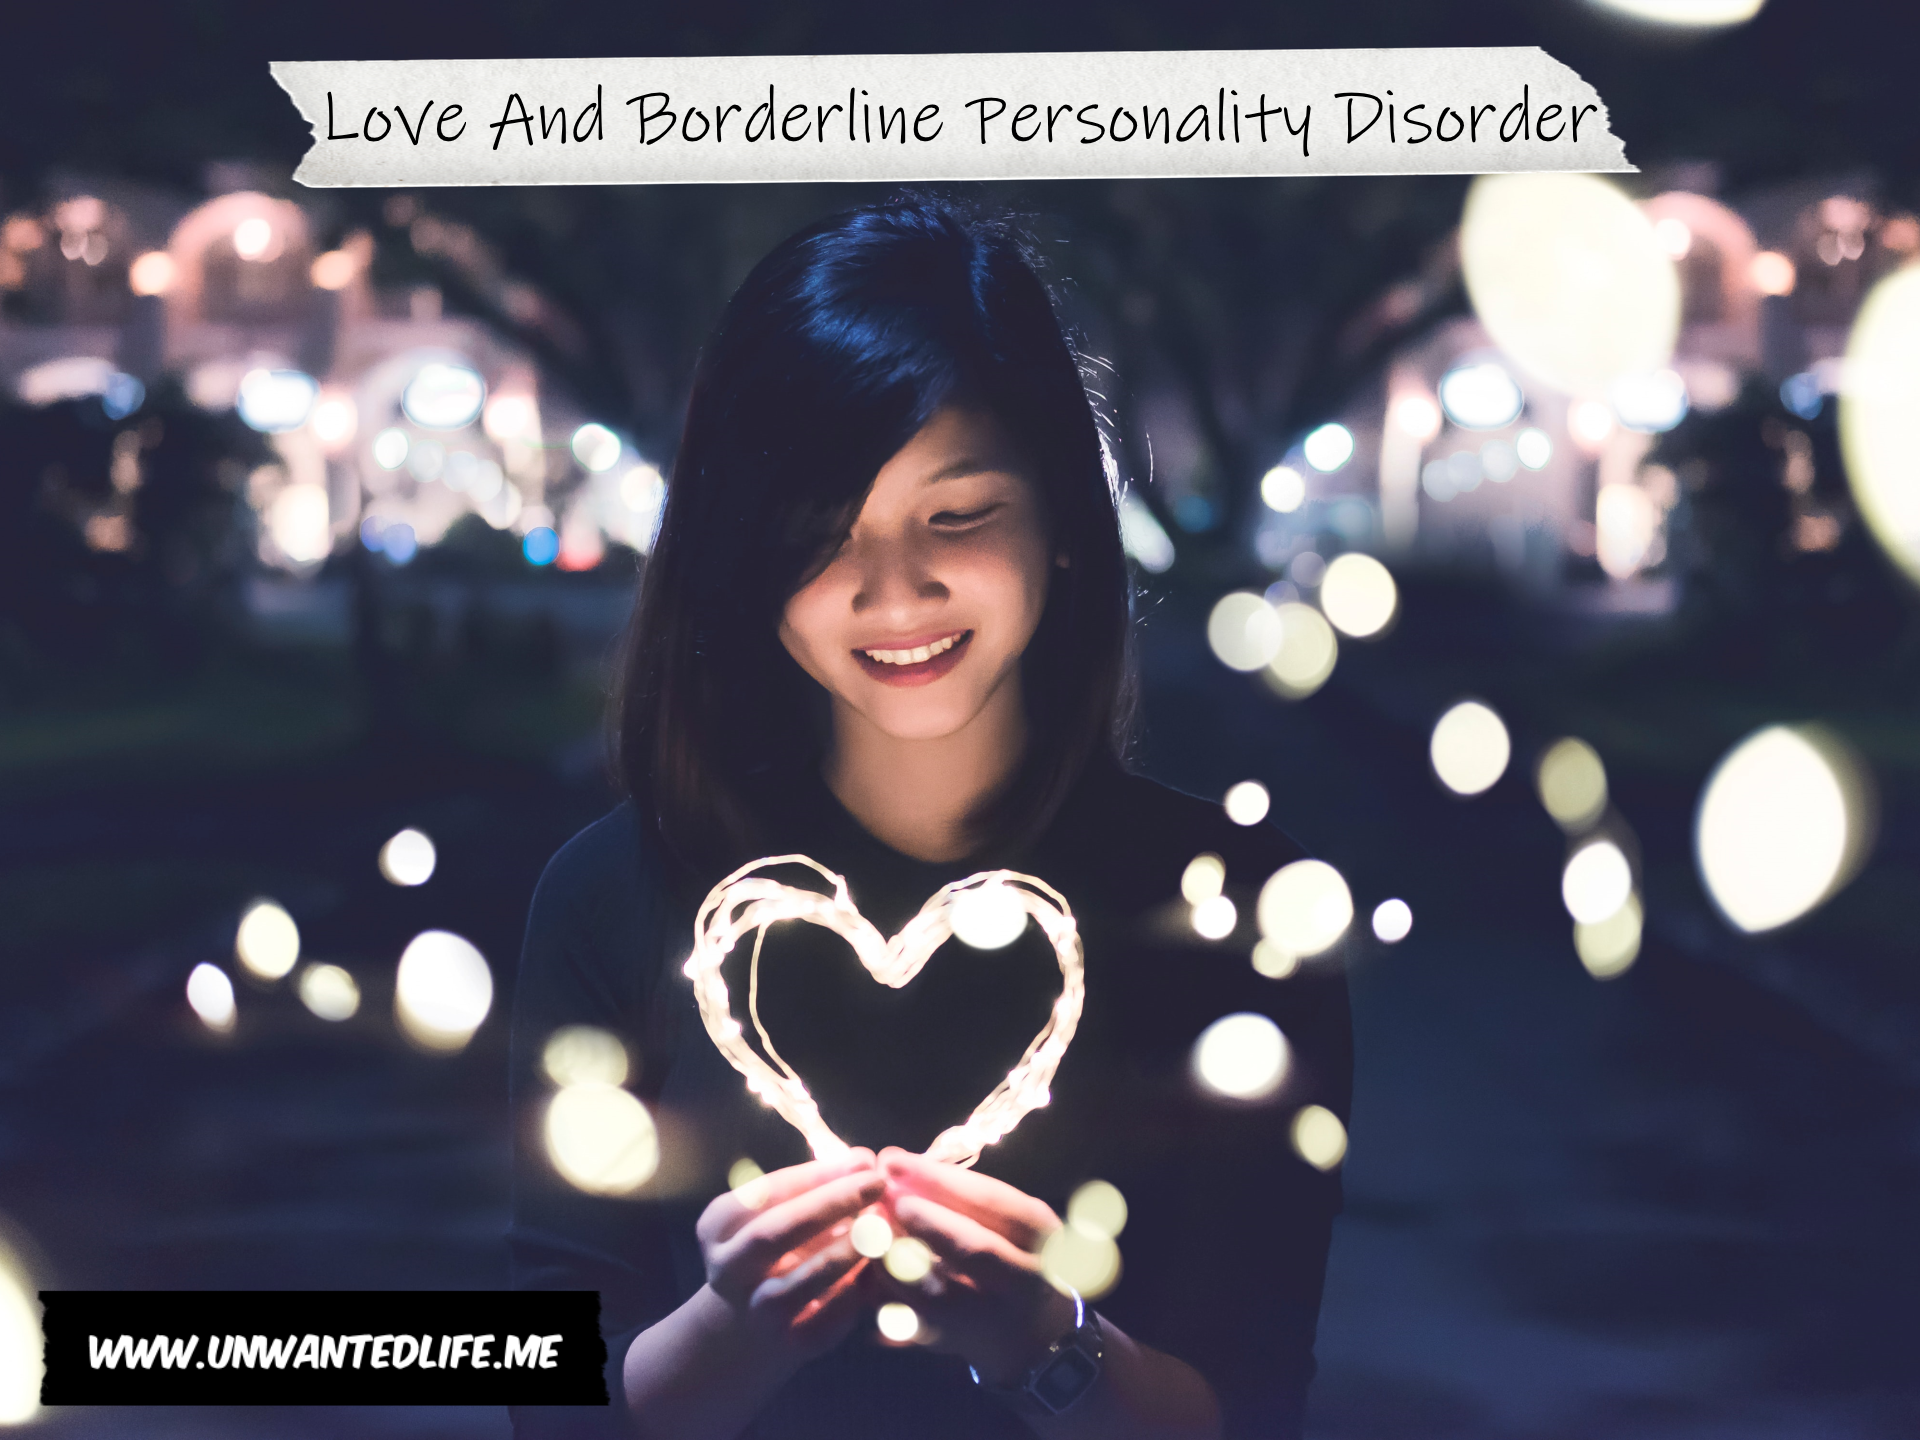 A photo of a young Asian woman holding a heart made out of cable that lights up. The two images are separated by the article title - Love And Borderline Personality Disorder